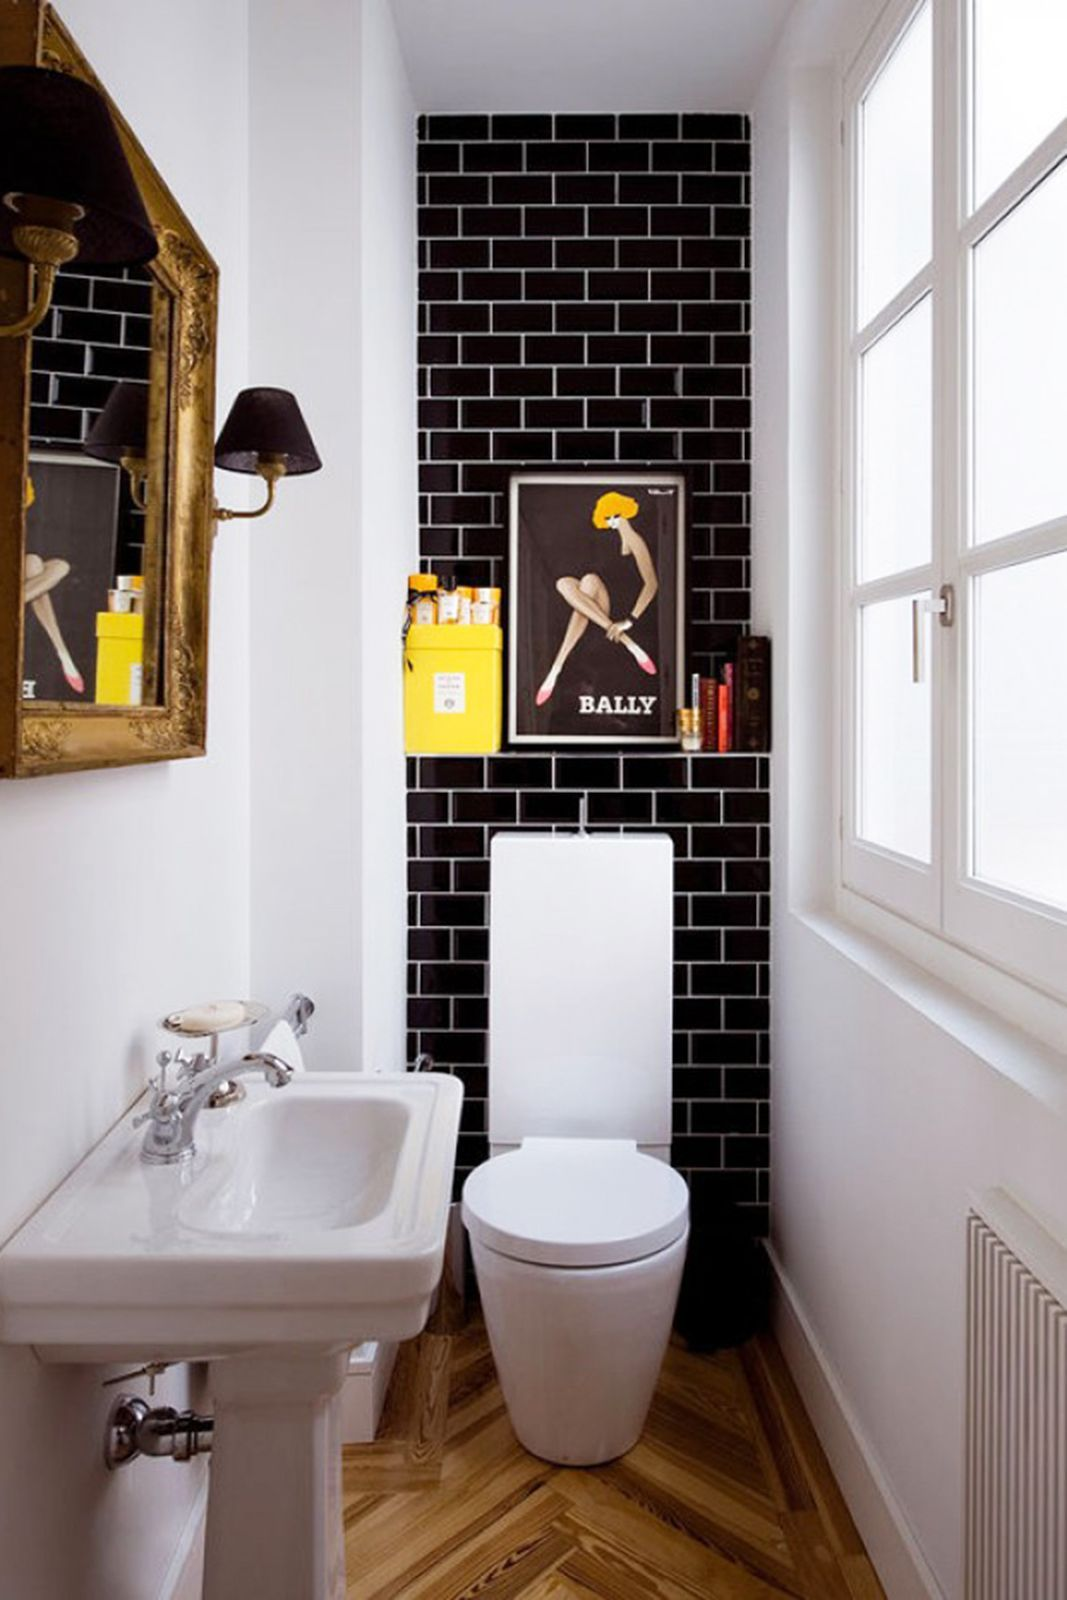 6 tricks to make a small bathroom feel luxurious interior design rh pinterest com